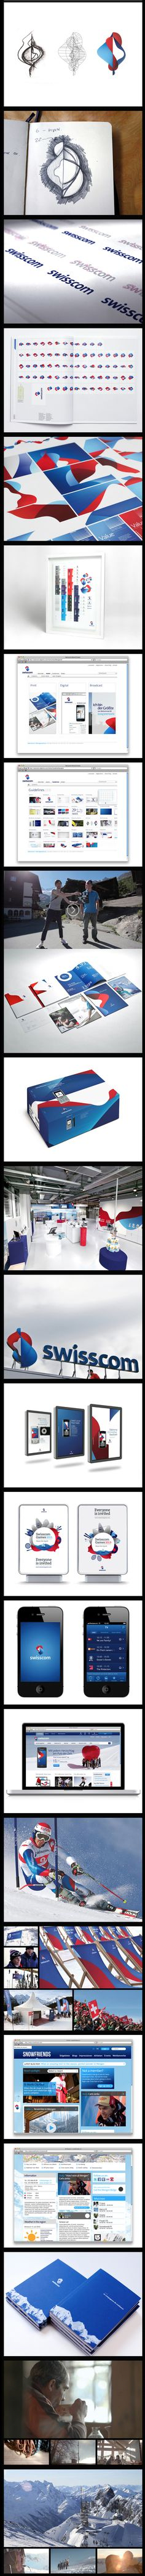 Moving Brands, Swisscom branding